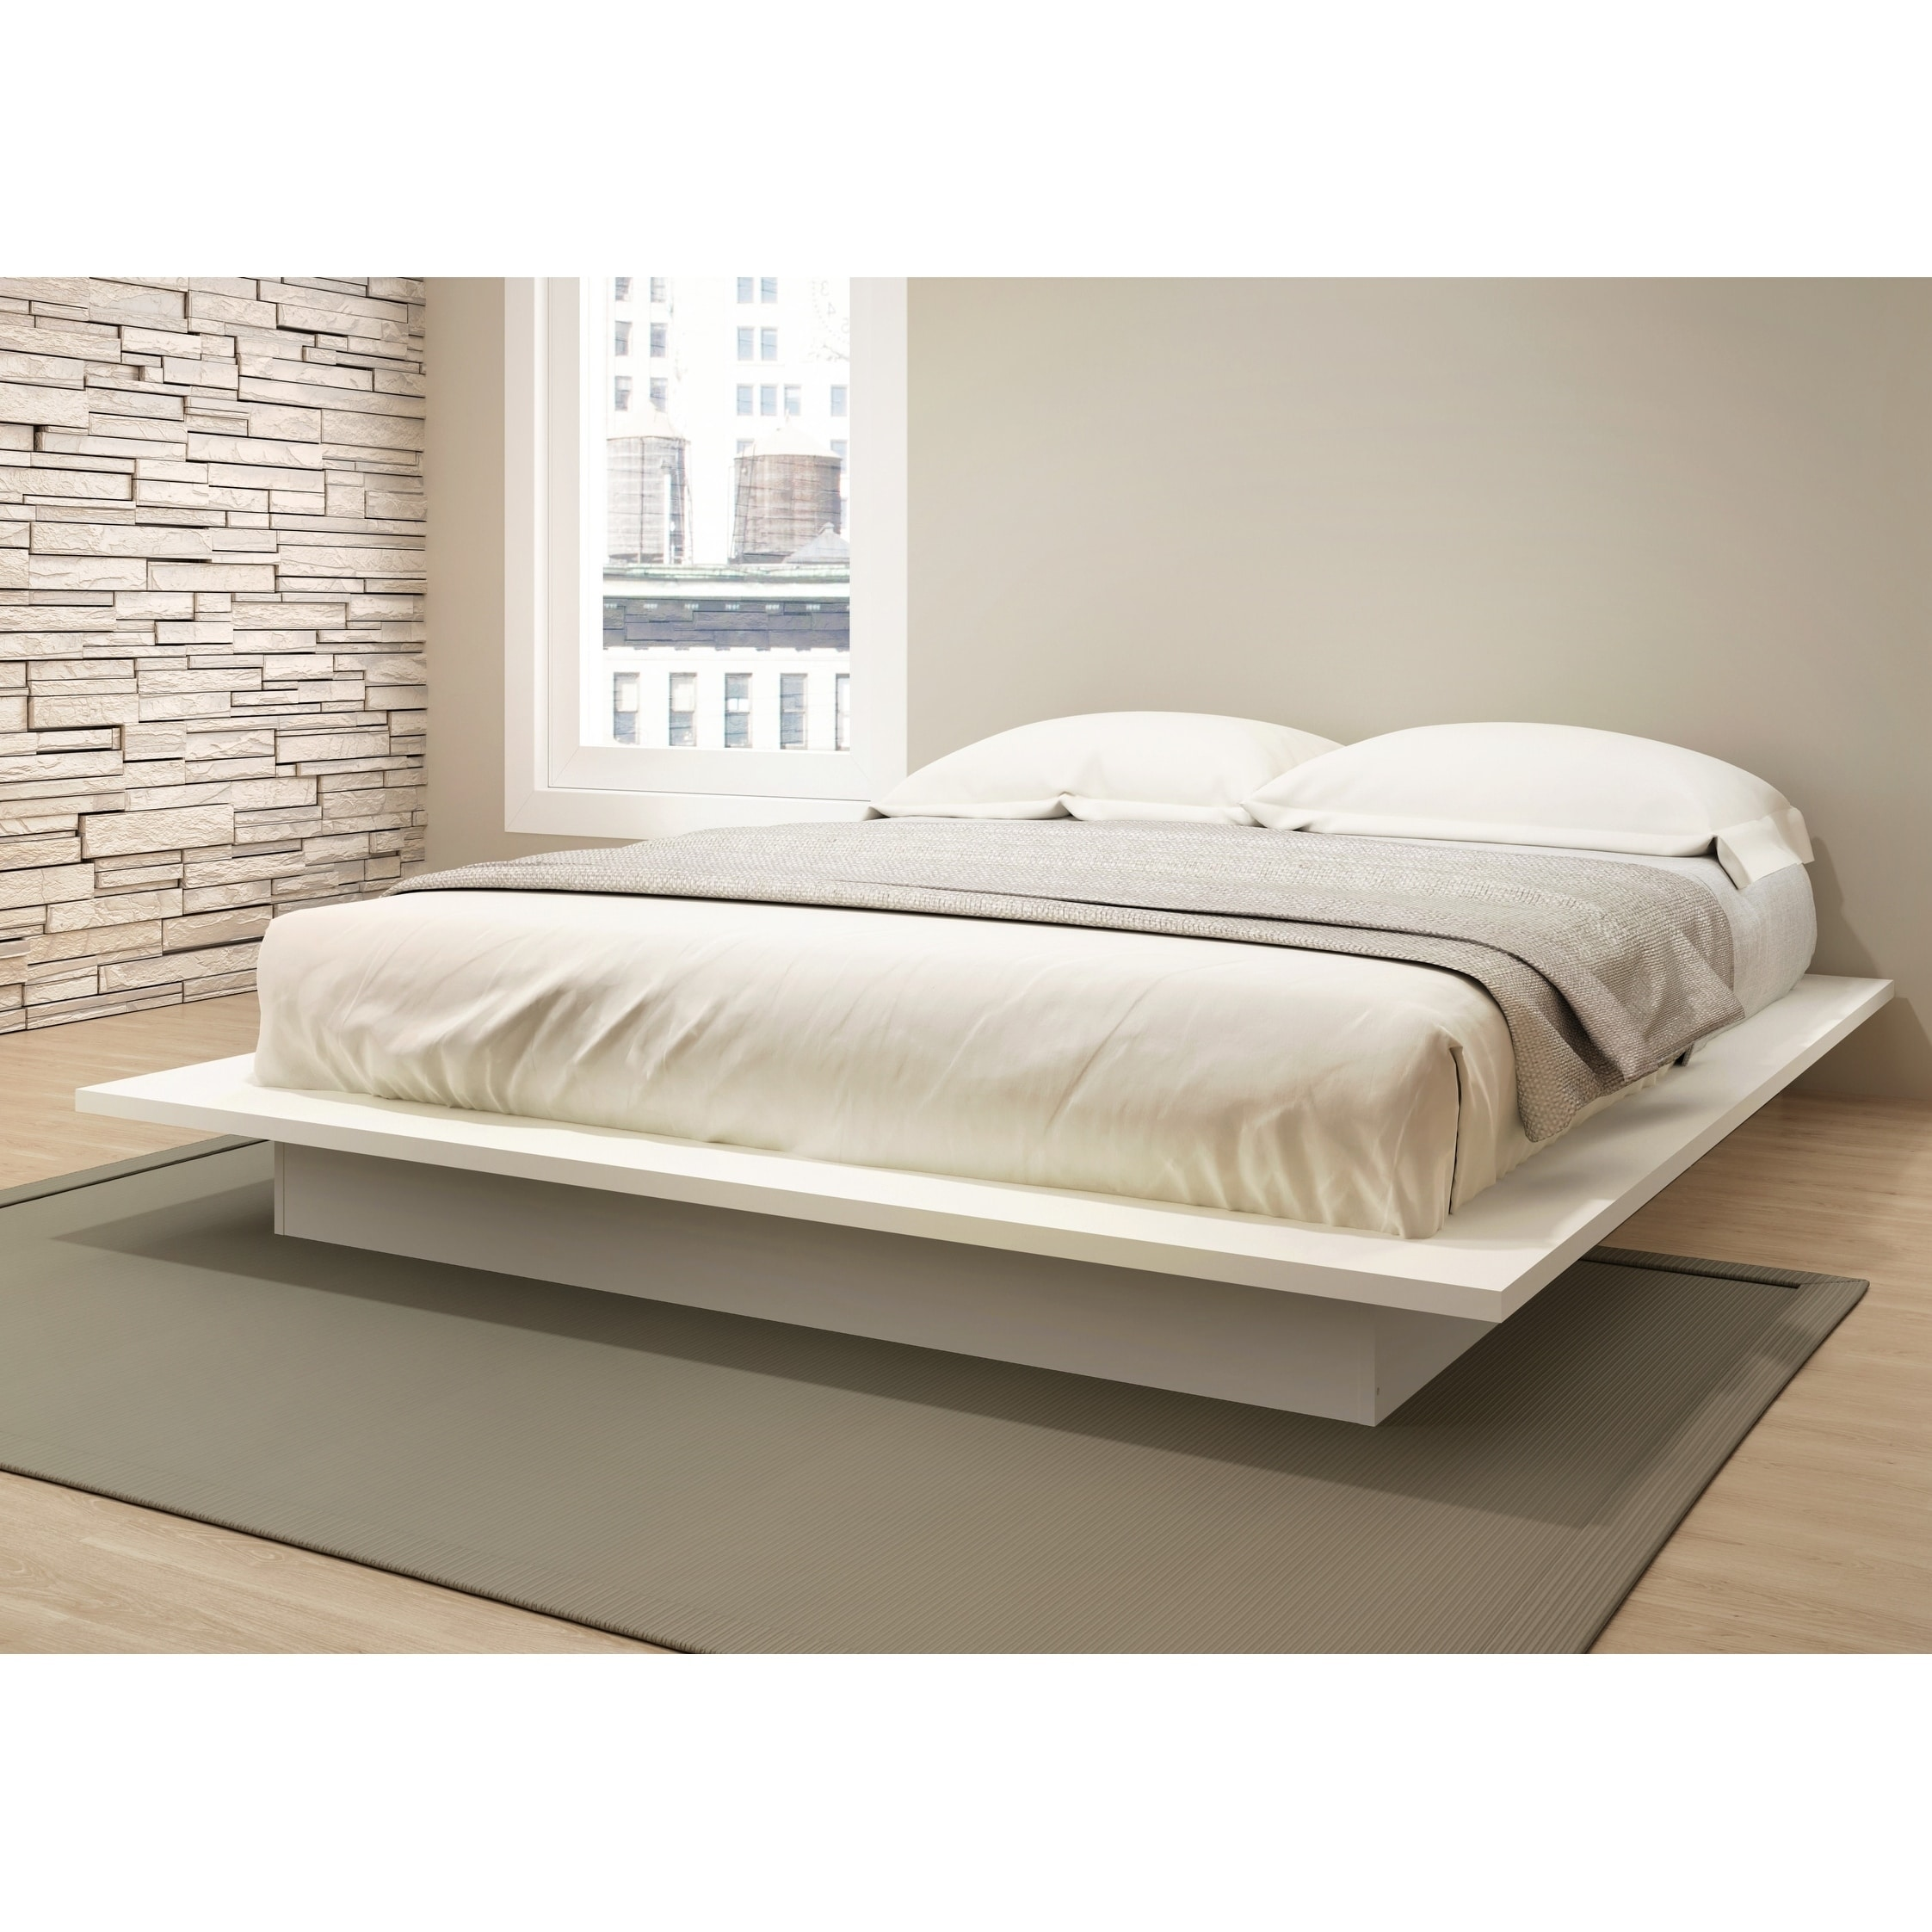 Picture of: Stellar Home Furniture Queen Platform Bed In Off White Overstock 21862235